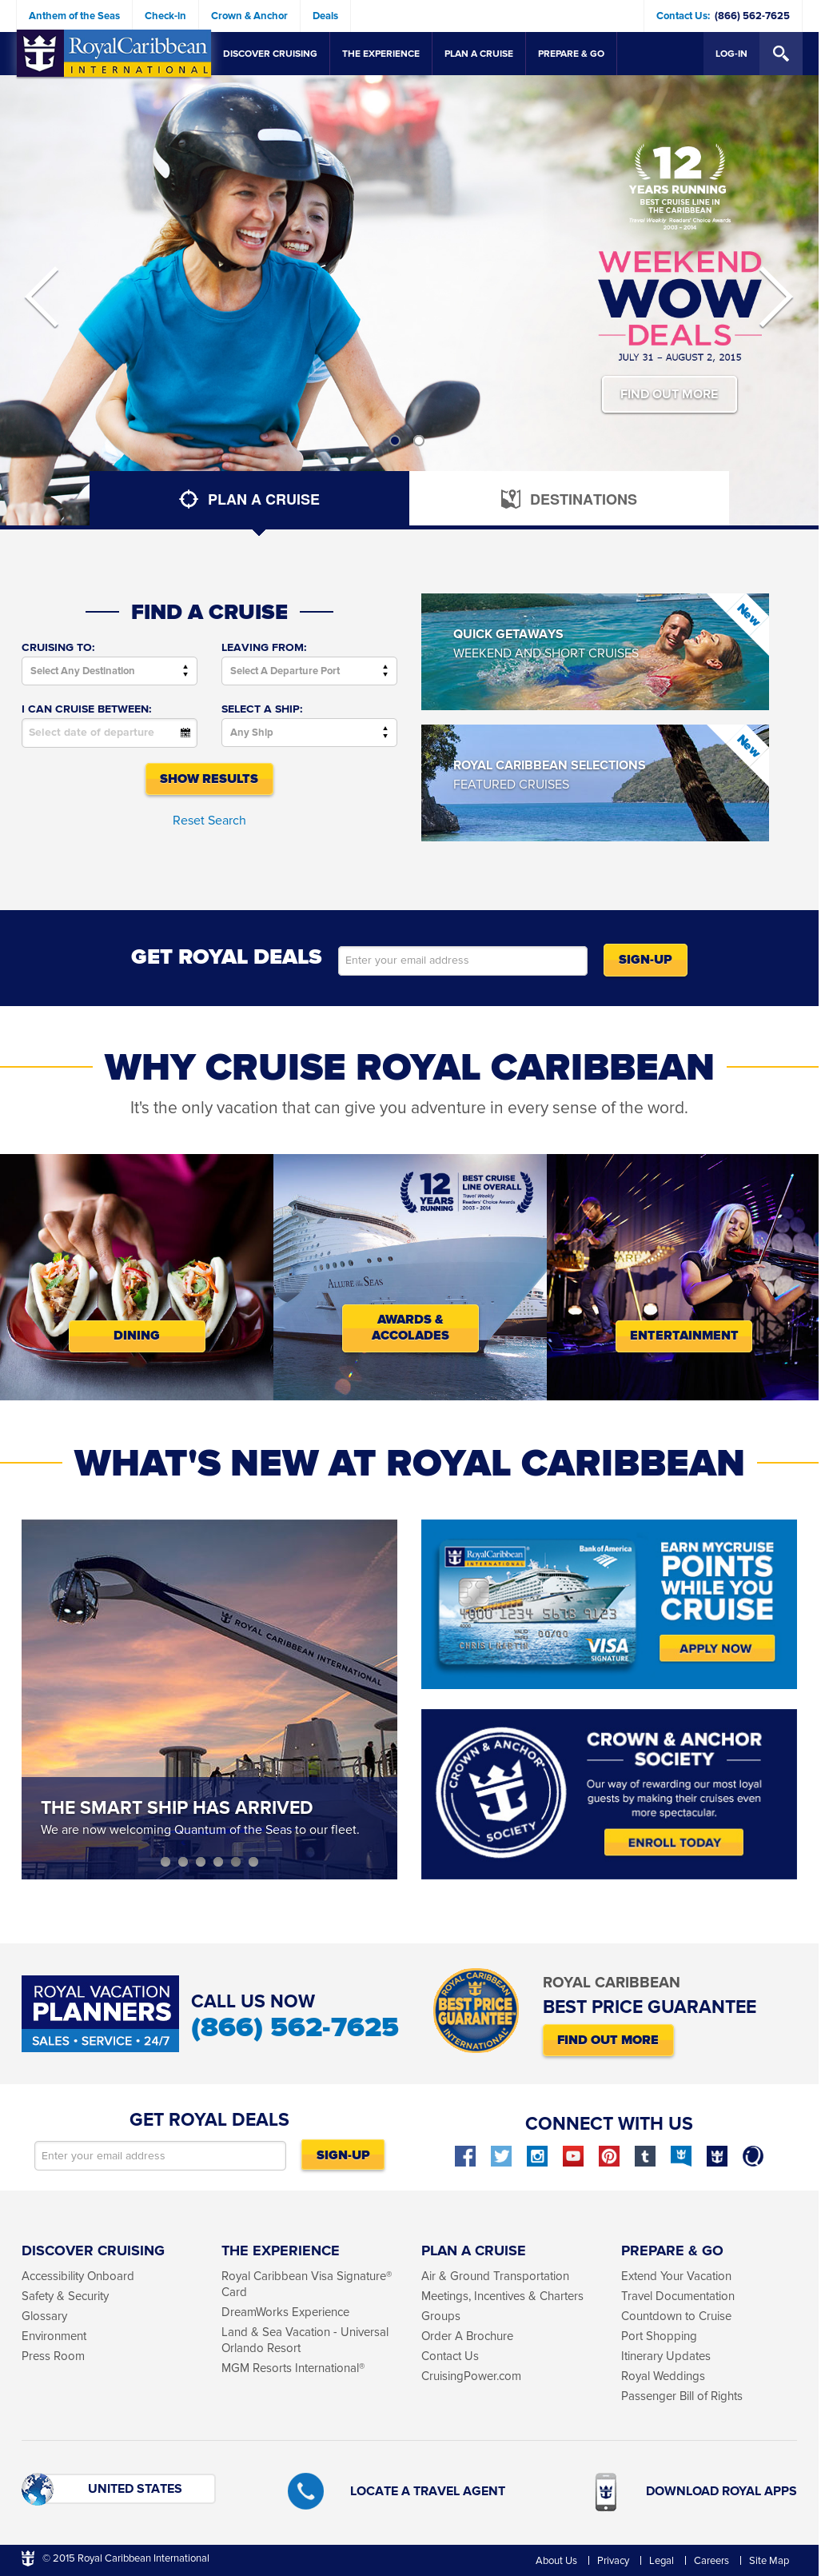 Royal Caribbean Competitors, Revenue and Employees - Owler